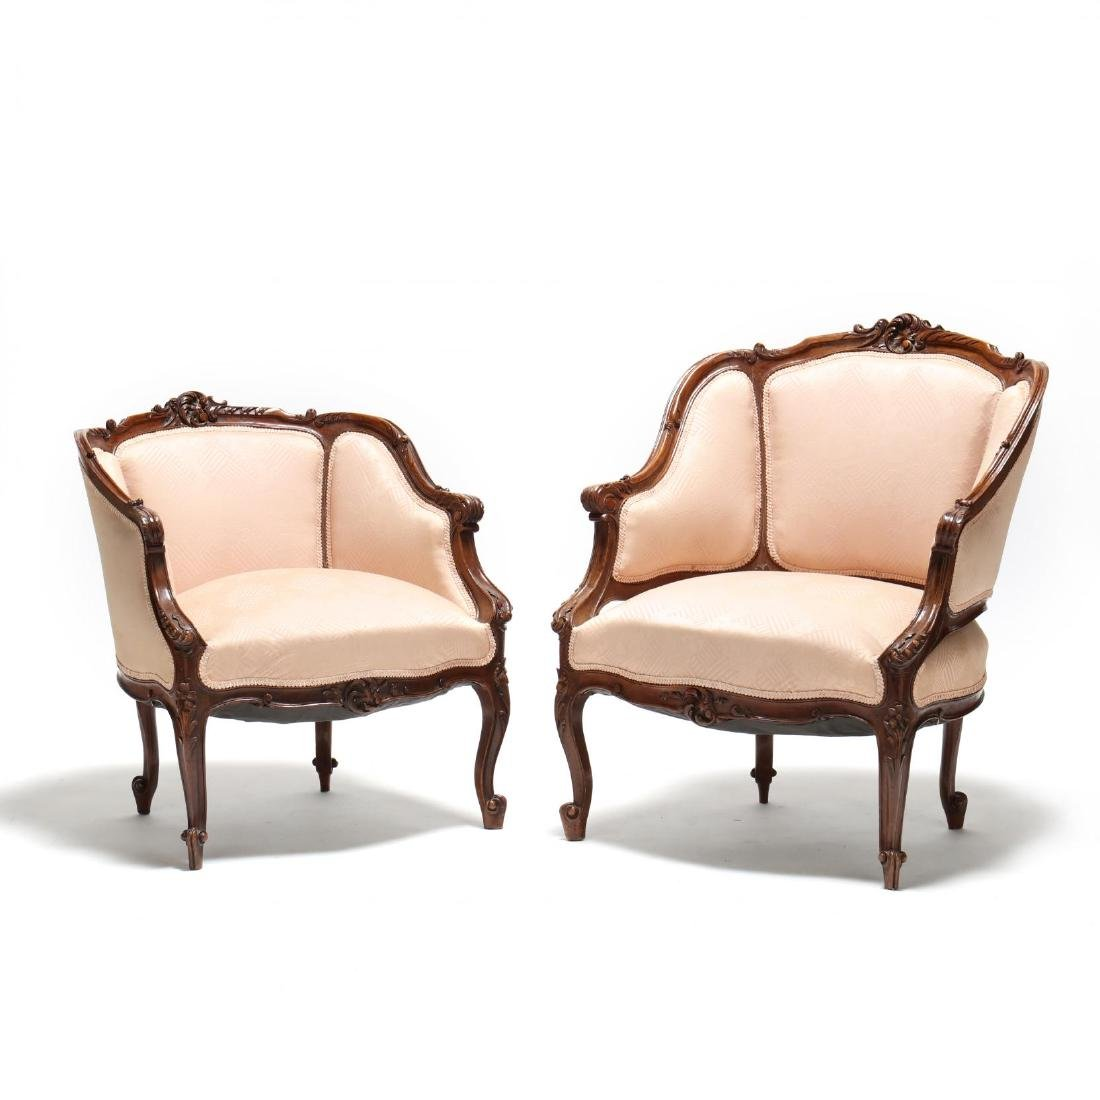 Two French Provincial Style Bergeres